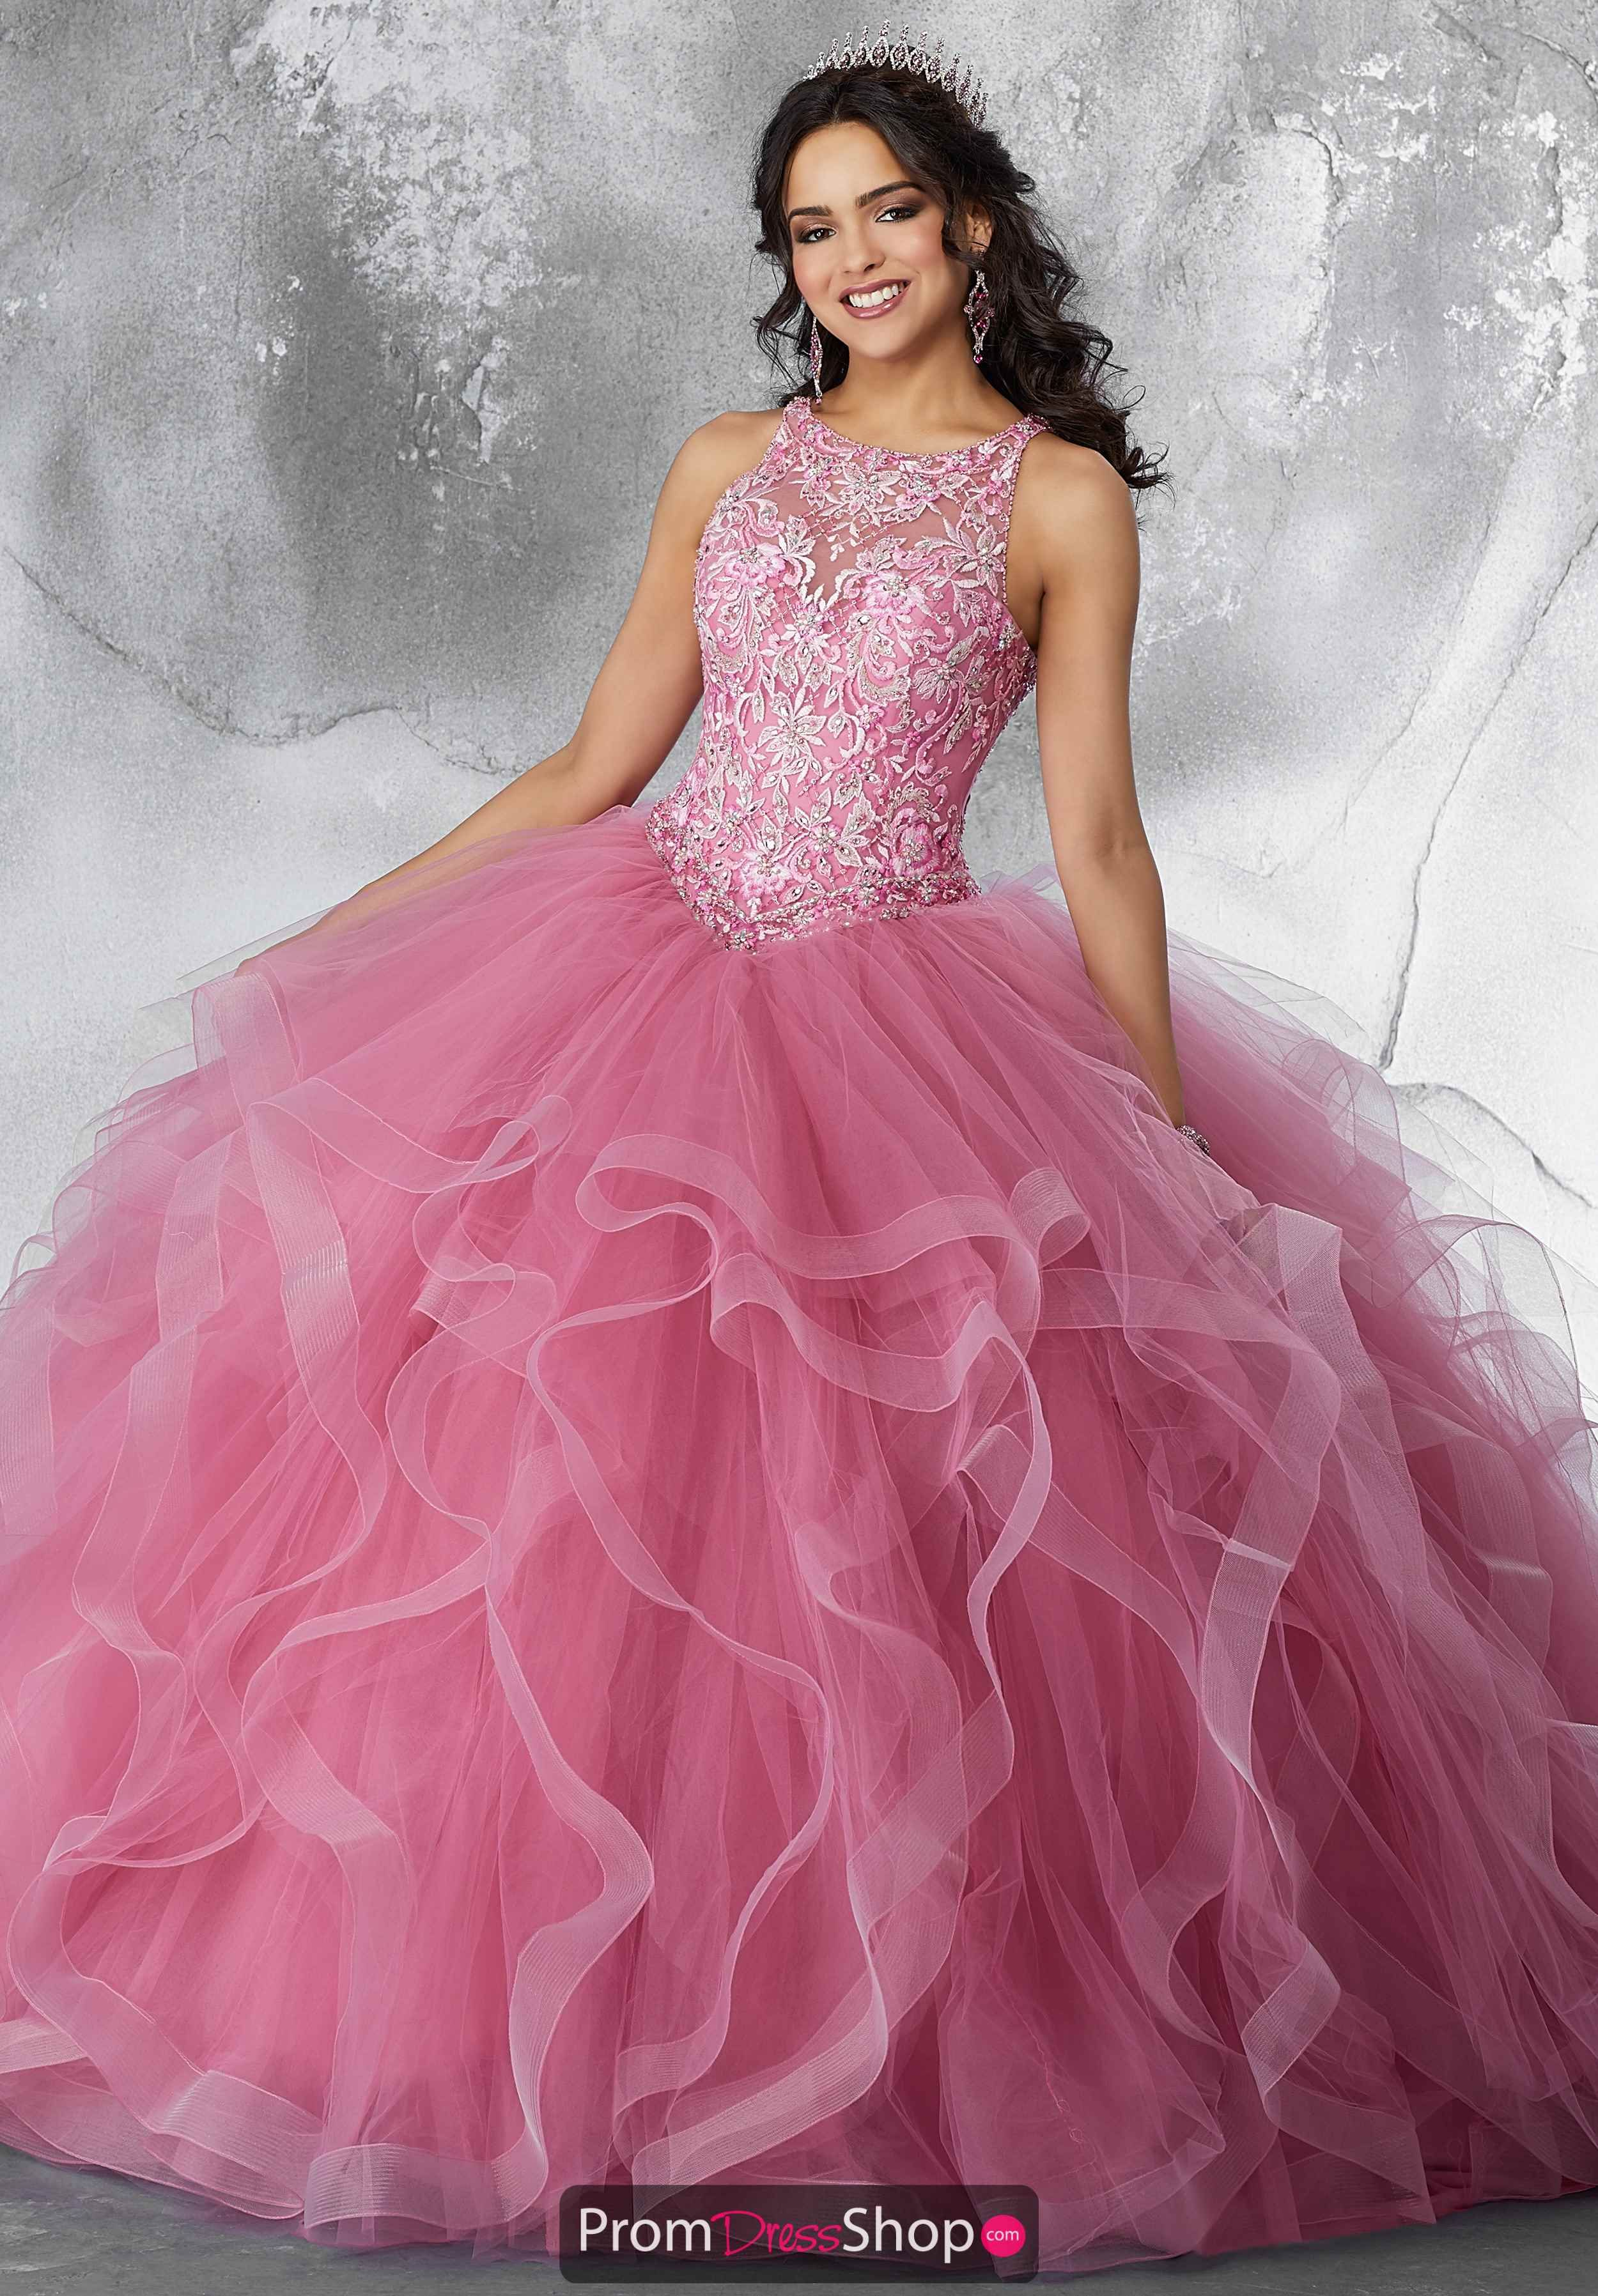 0e681220a3 Vizcaya Quinceanera High Neckline Beaded Gown 89194 in 2019 ...